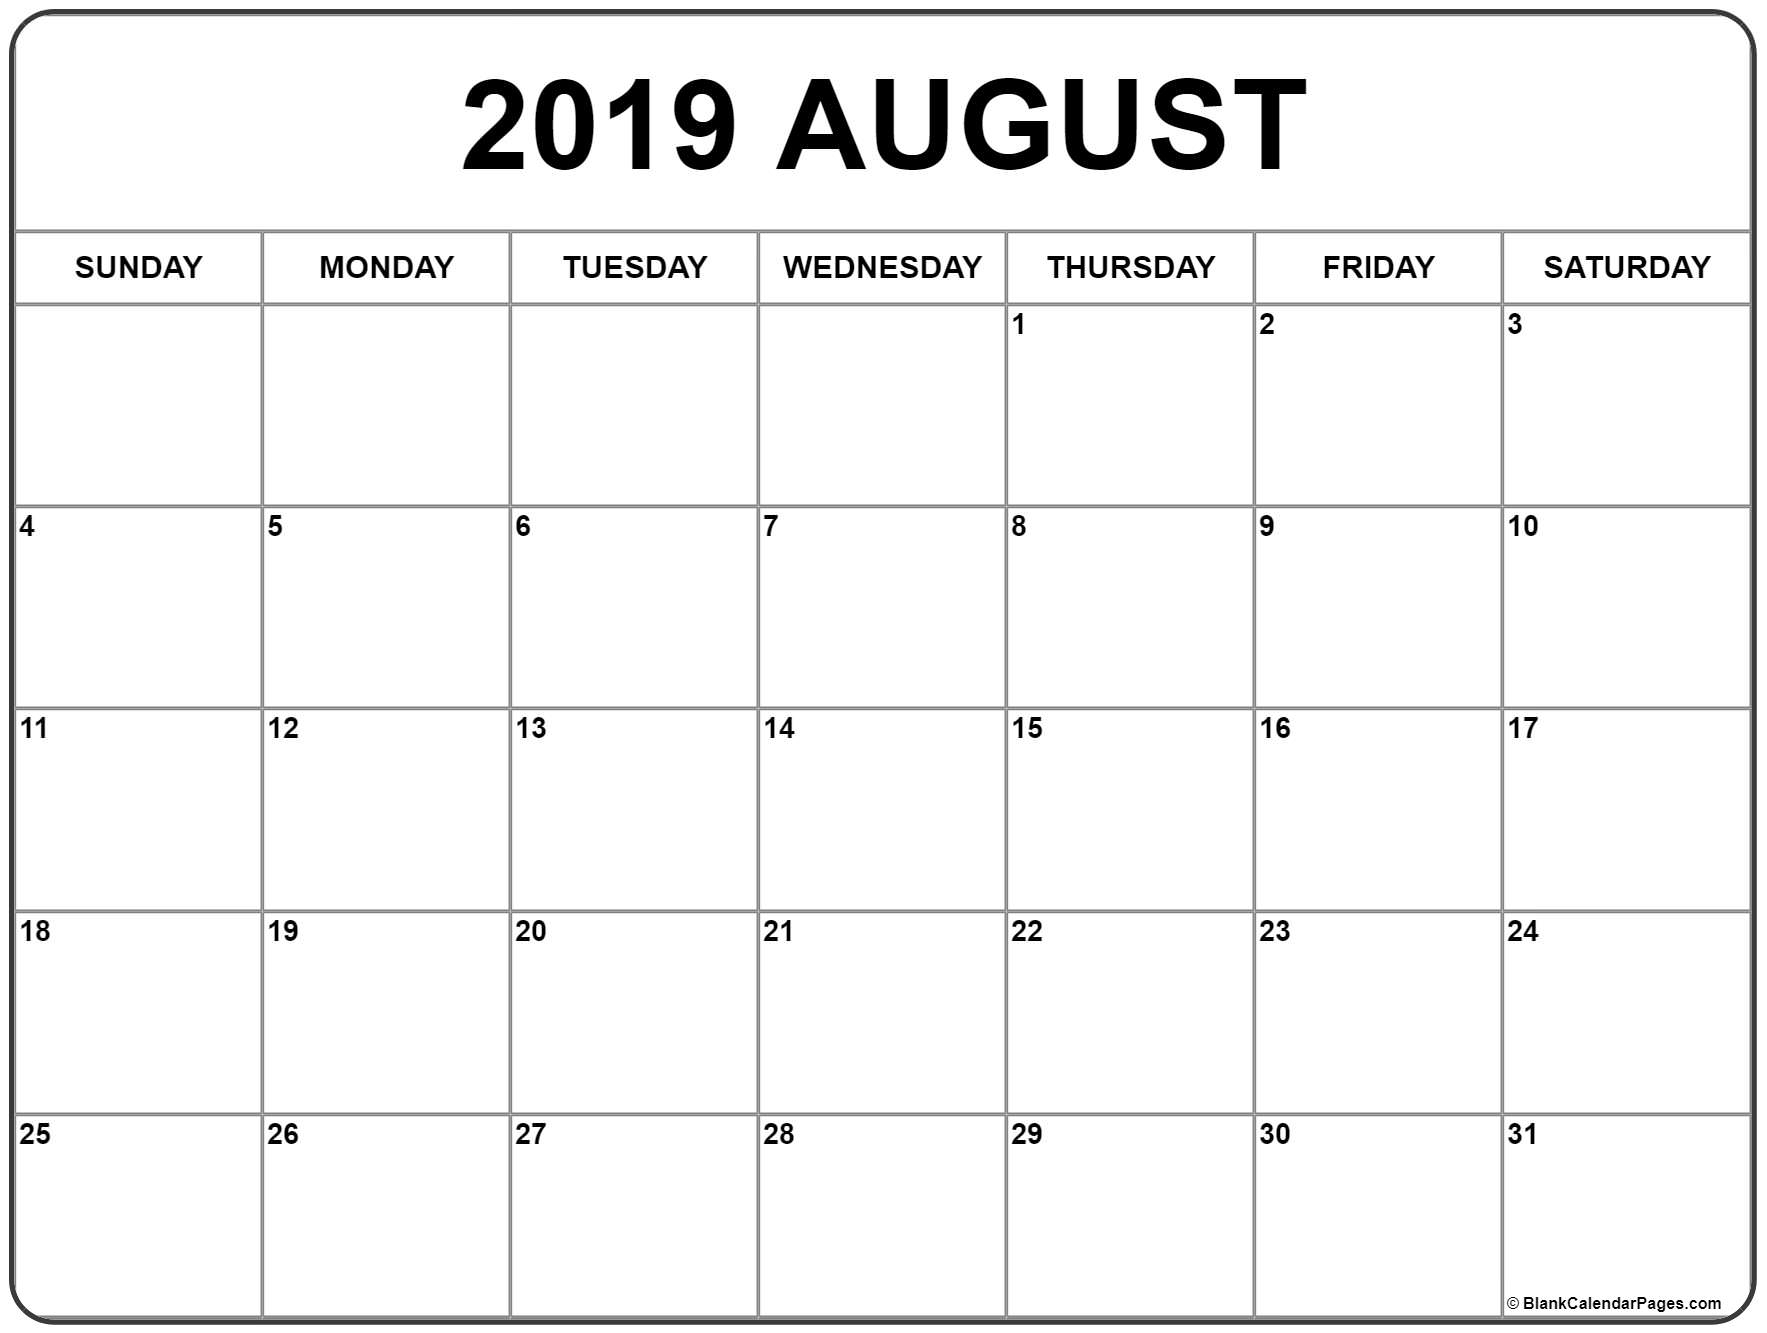 August 2019 Calendar | Free Printable Monthly Calendars within August Blank Calendar Pages